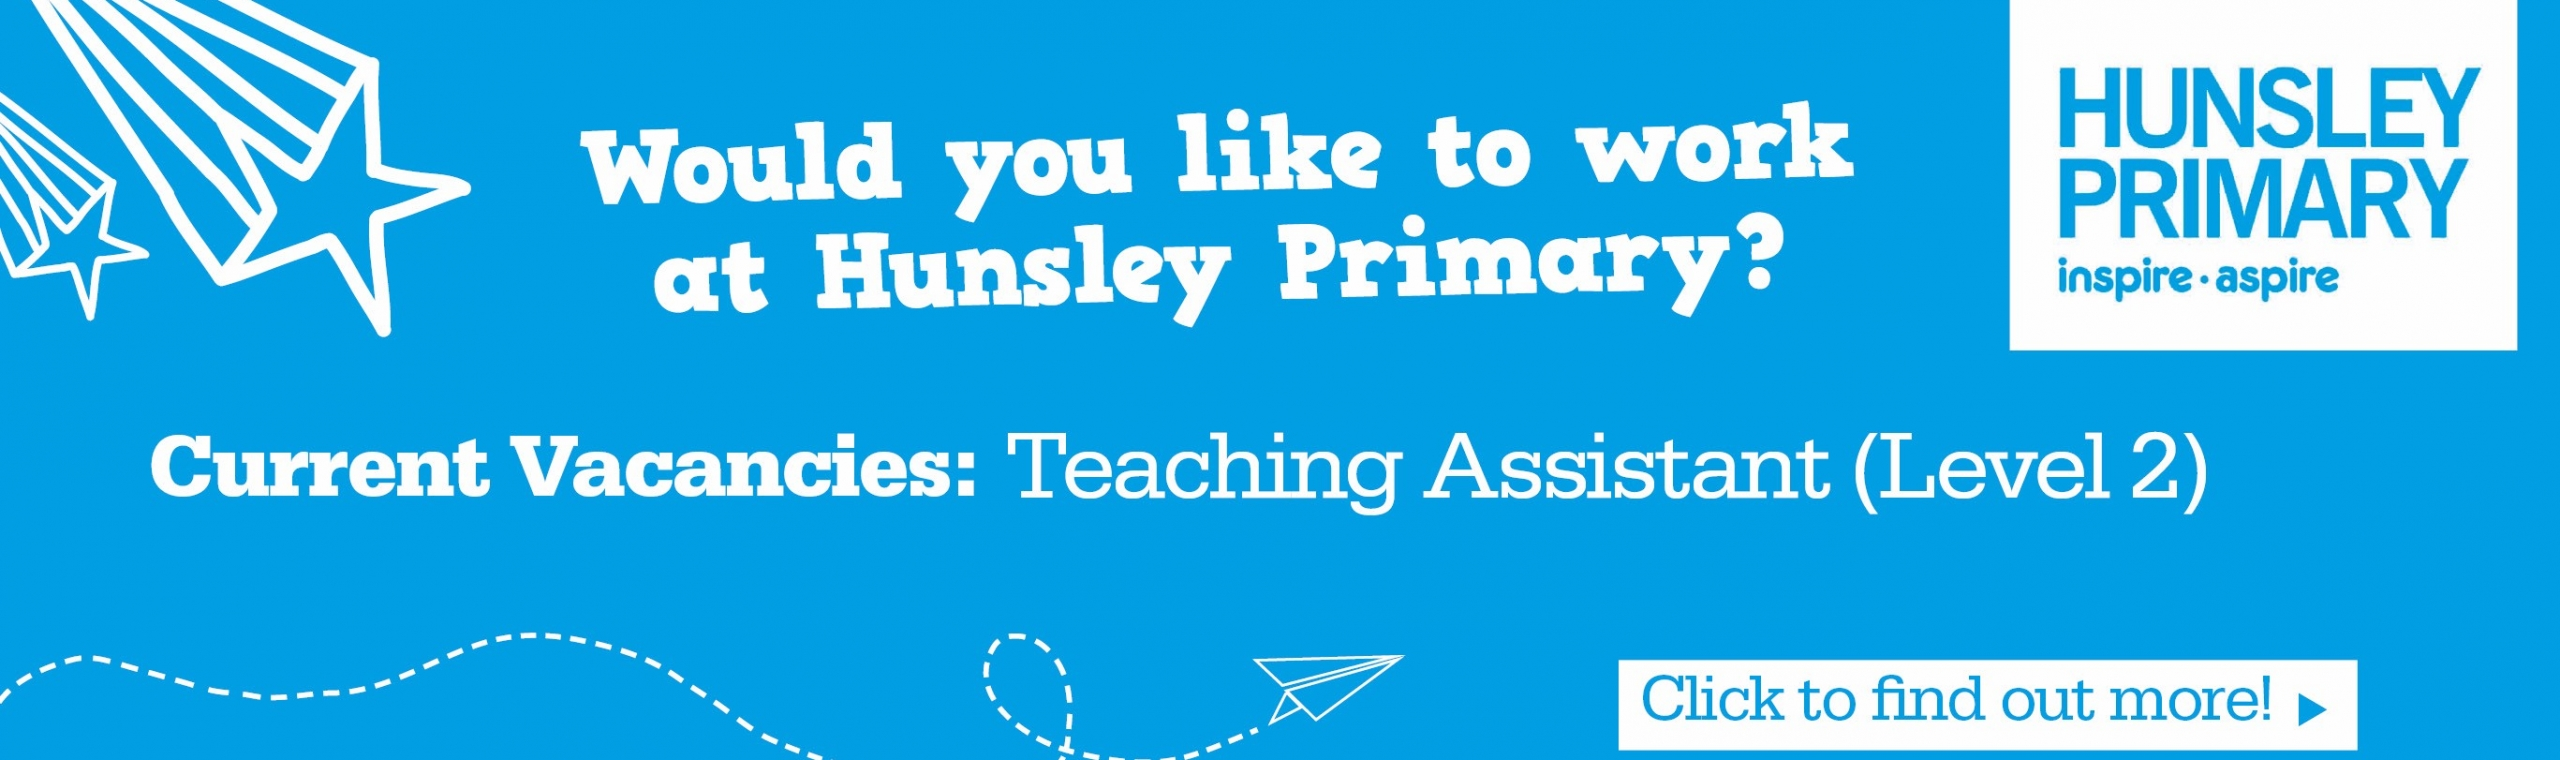 Hunsley_Primary_Banner – Current Vacancies – TA